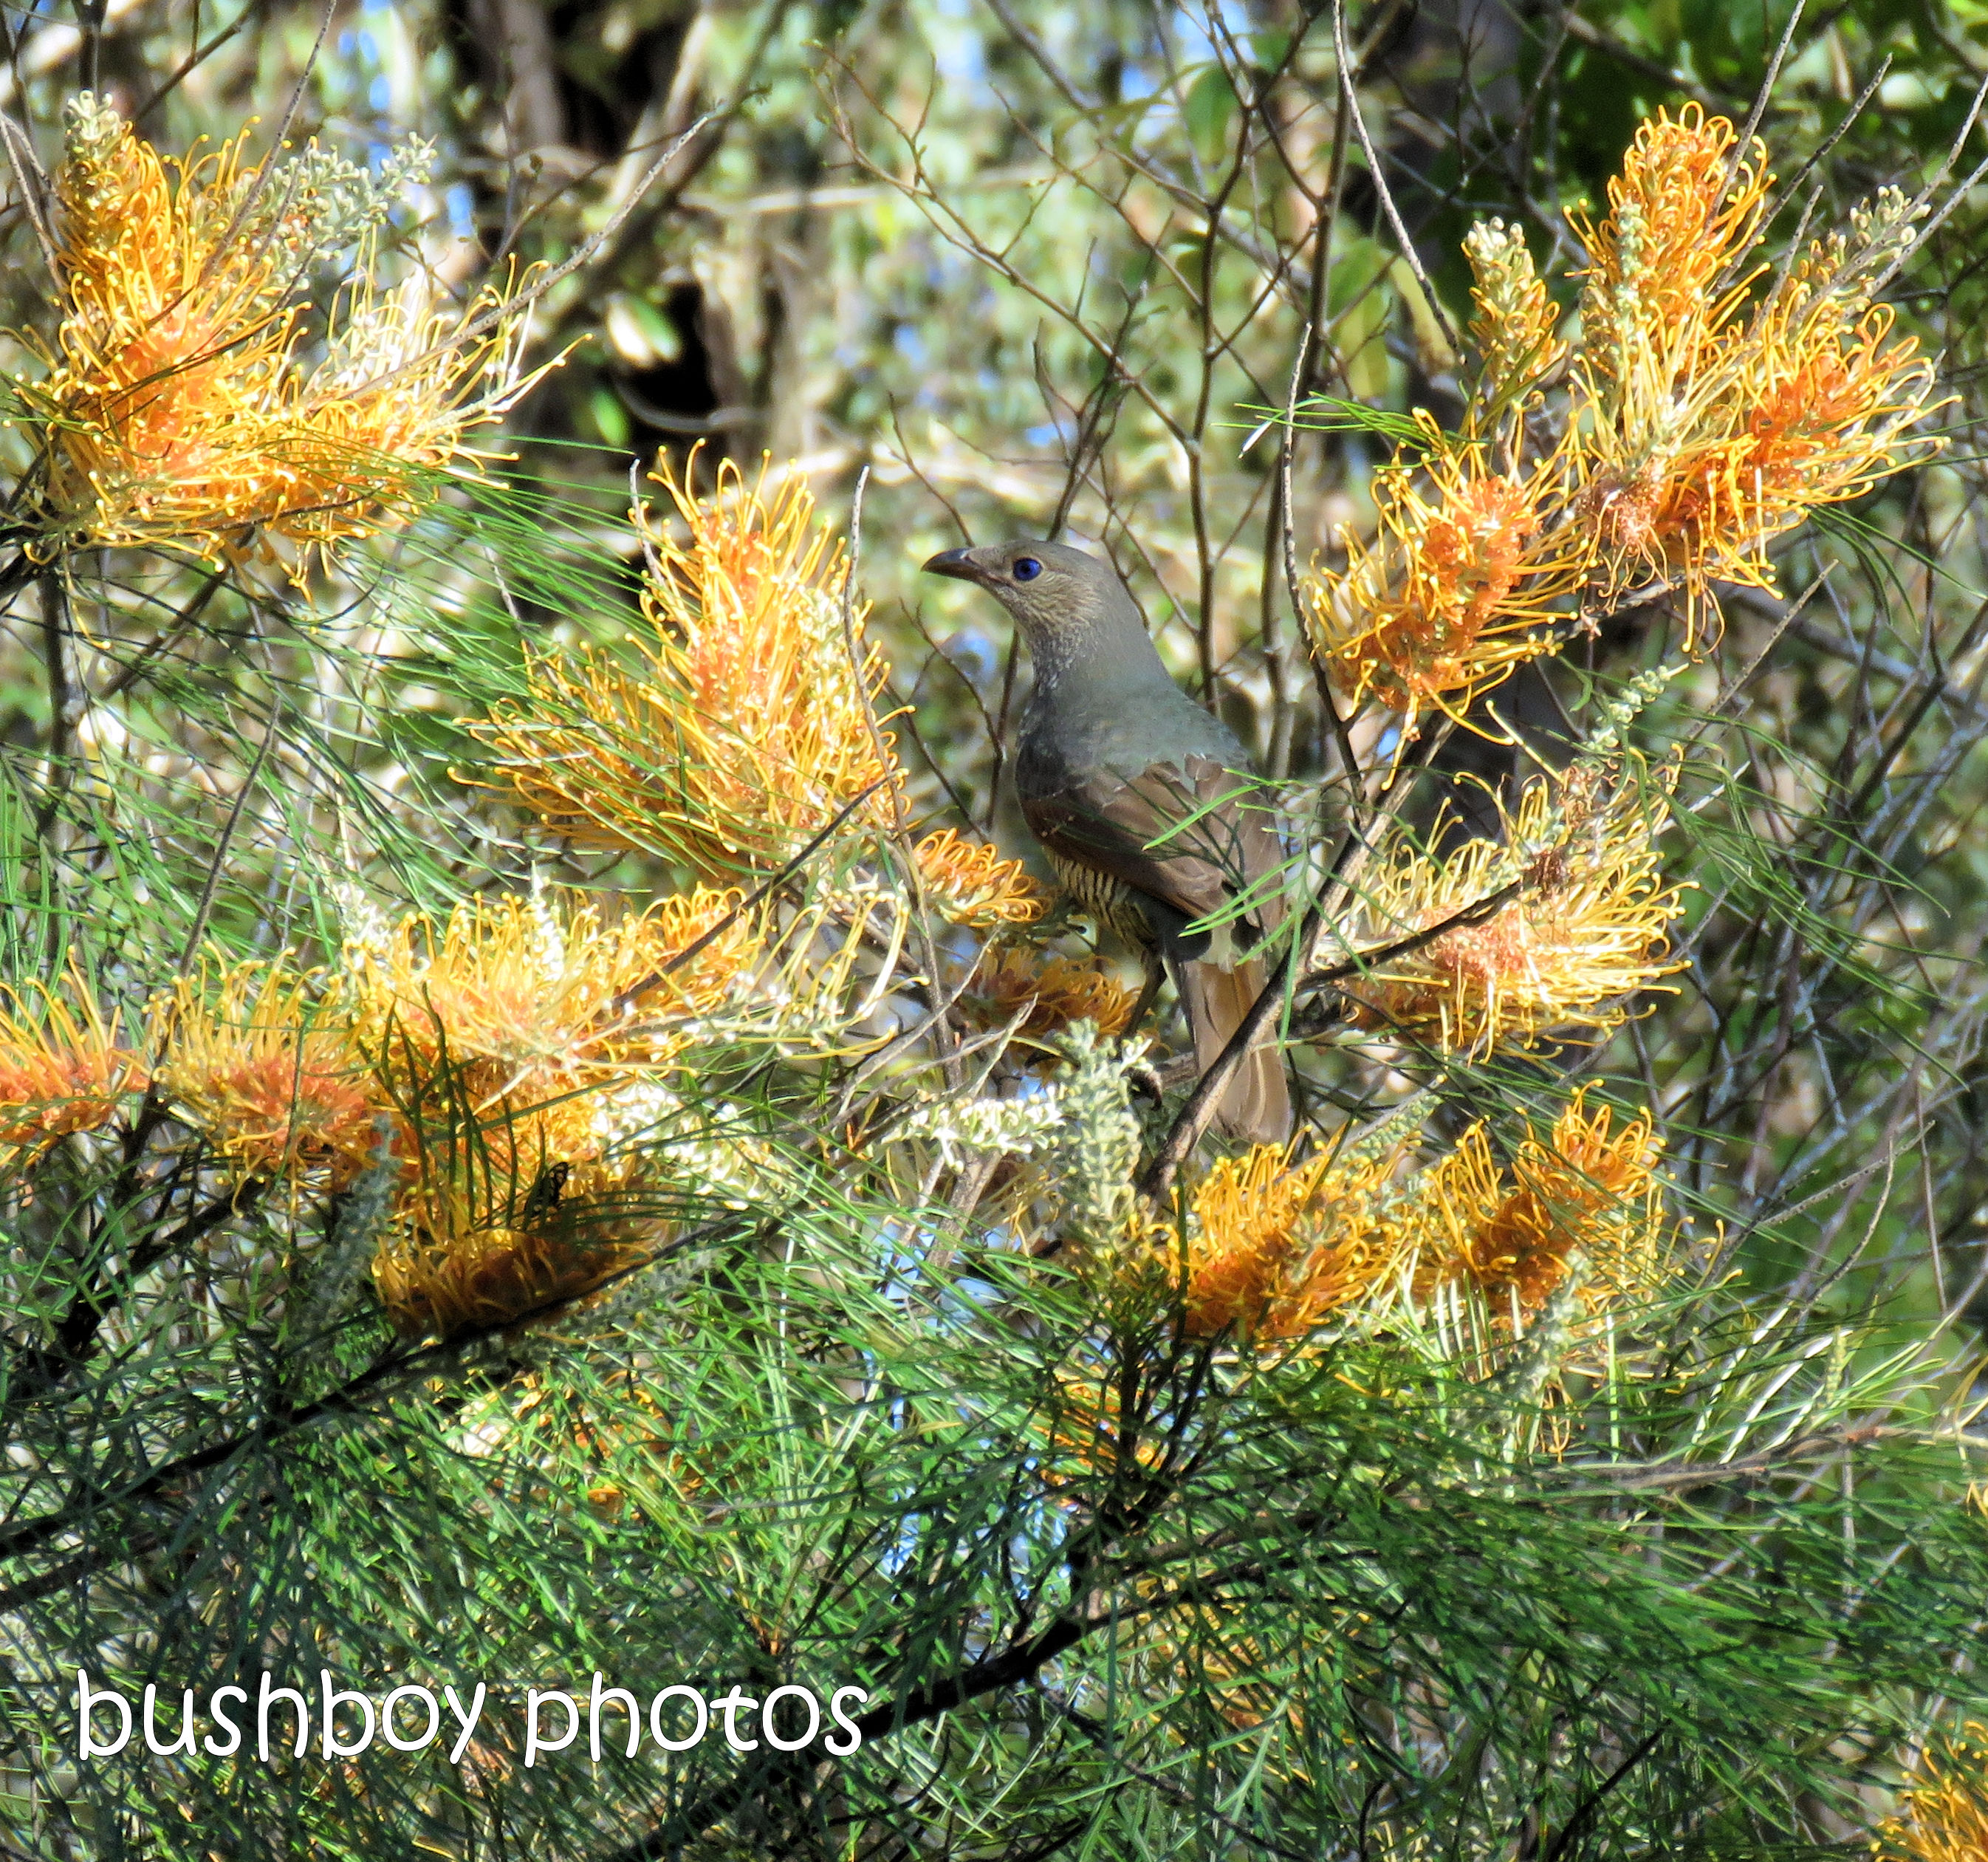 181031_wordless_wednesday_satin bower bird_honeygem